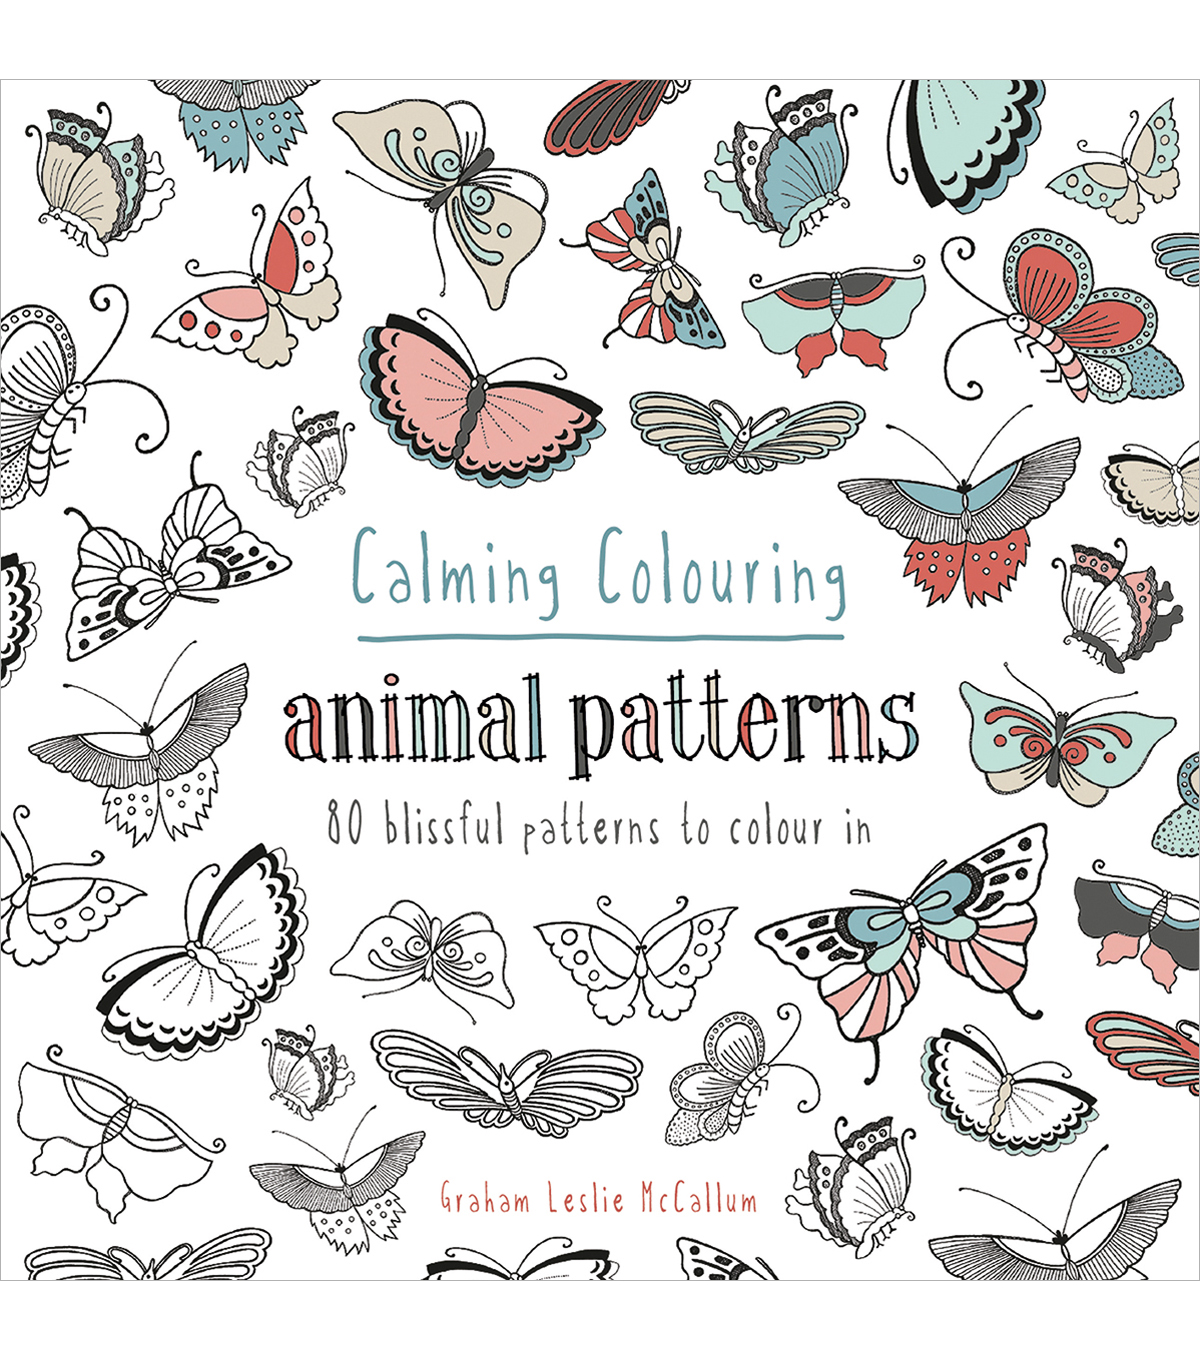 Pavilion Books Calming Coloring Animal Patterns Book